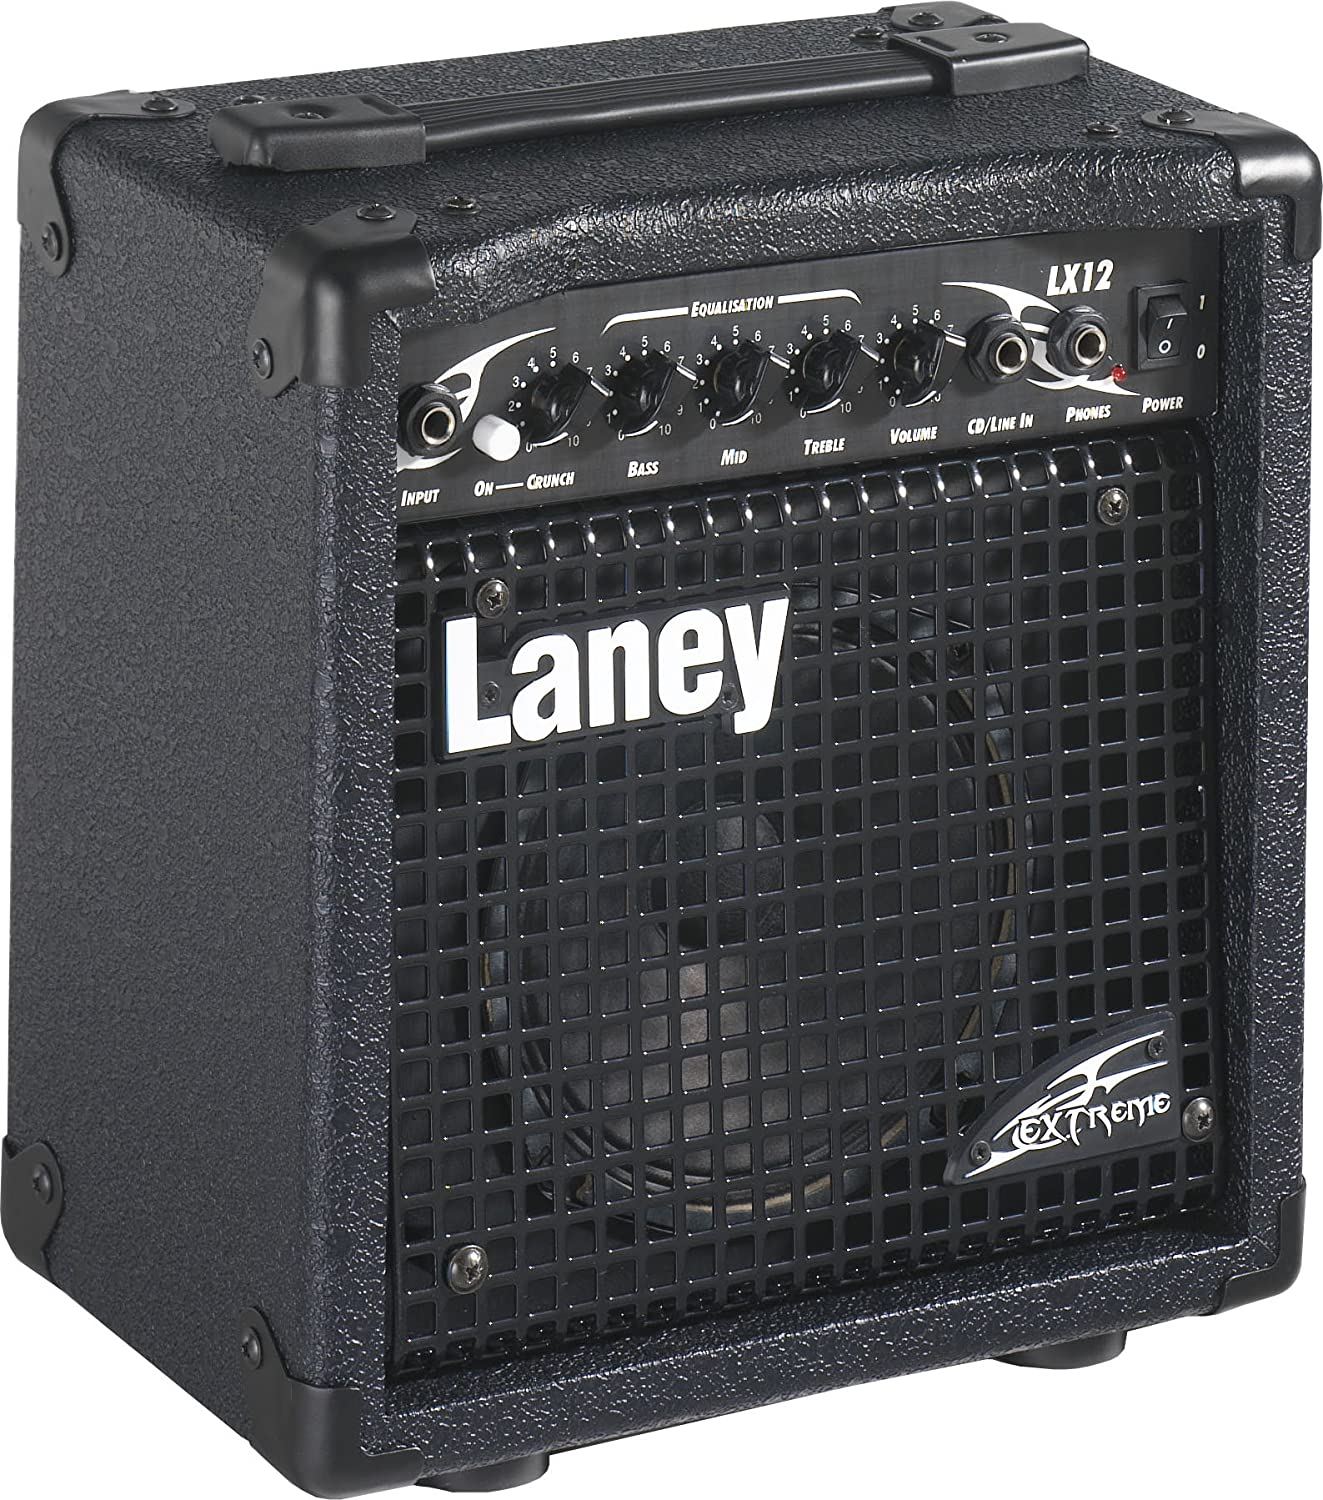 Amazon.com: Laney LX12 solid state amplifier - 12 Watt: Musical Instruments